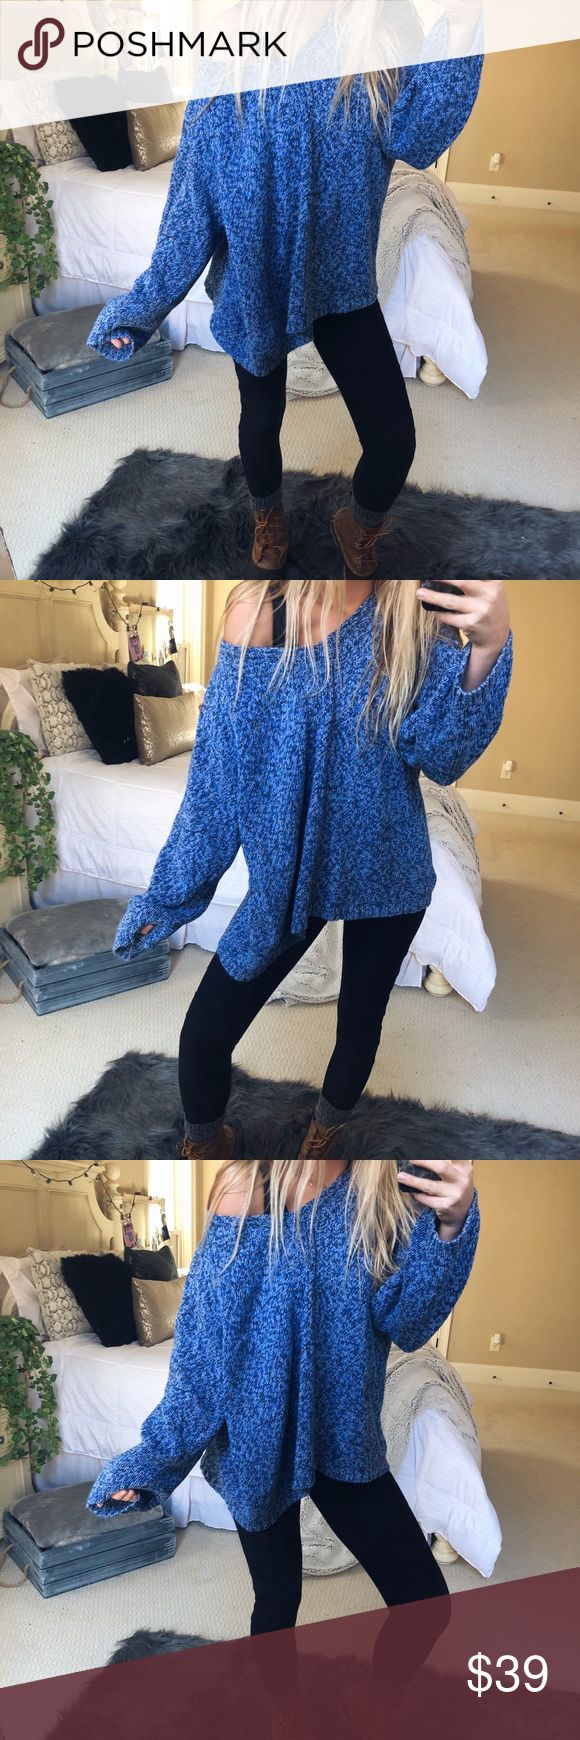 slouchy moselle knit super gorgeous and cozy blue + white blended knit sweater. such a gorgeous slouchy silhouette. fits a medium or large 🌻✨ — * all offers 100% welcomed + encouraged * bundle for a private discount of at least 20% off  * orders guaranteed to ship within 1-2 days unless stated otherwise * ask me any questions if you ever have any! xo Sweaters